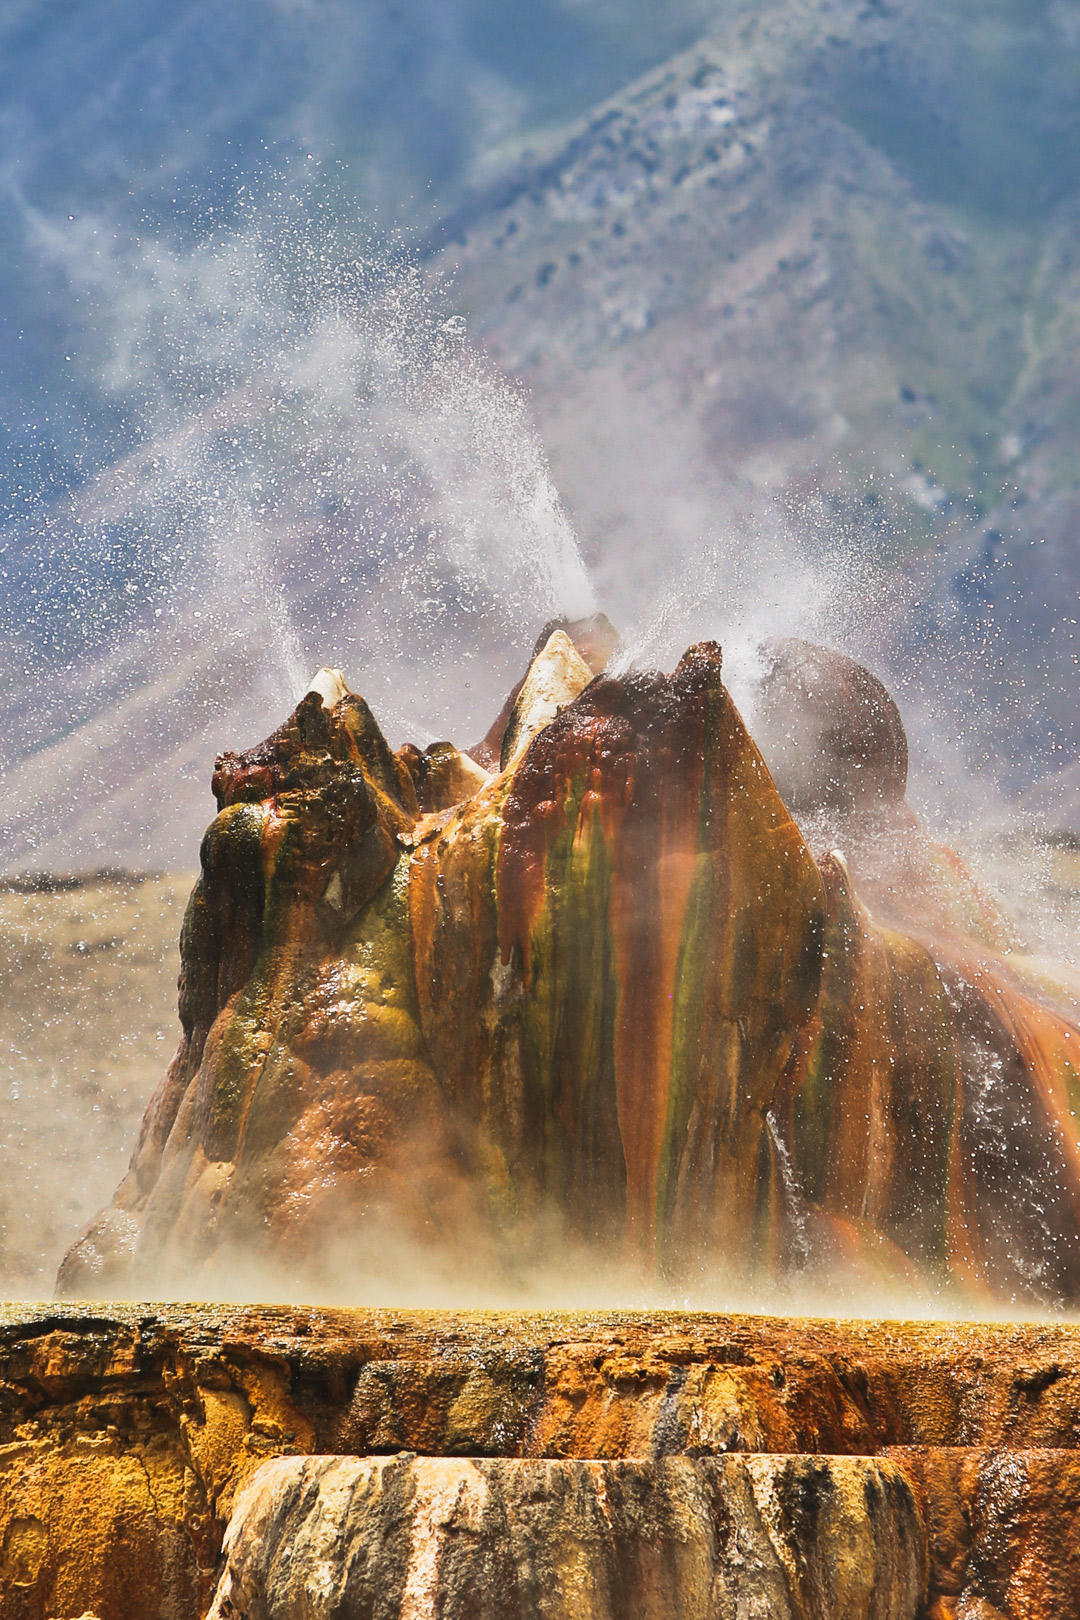 Heading to the fly geyser in the black rock desert in Nevada? Save this pin and click through to see the ultimate guide to the Fly Geyser. Find out the best time to visit, what to pack, how to book a the fly geyser tour, and photography tips. It's a spectacular natural wonder that you should absolutely visit. // Local Adventurer #localadventurer #travelnevada #dfmi #nevada #flygeyser #blackrockdesert #desert